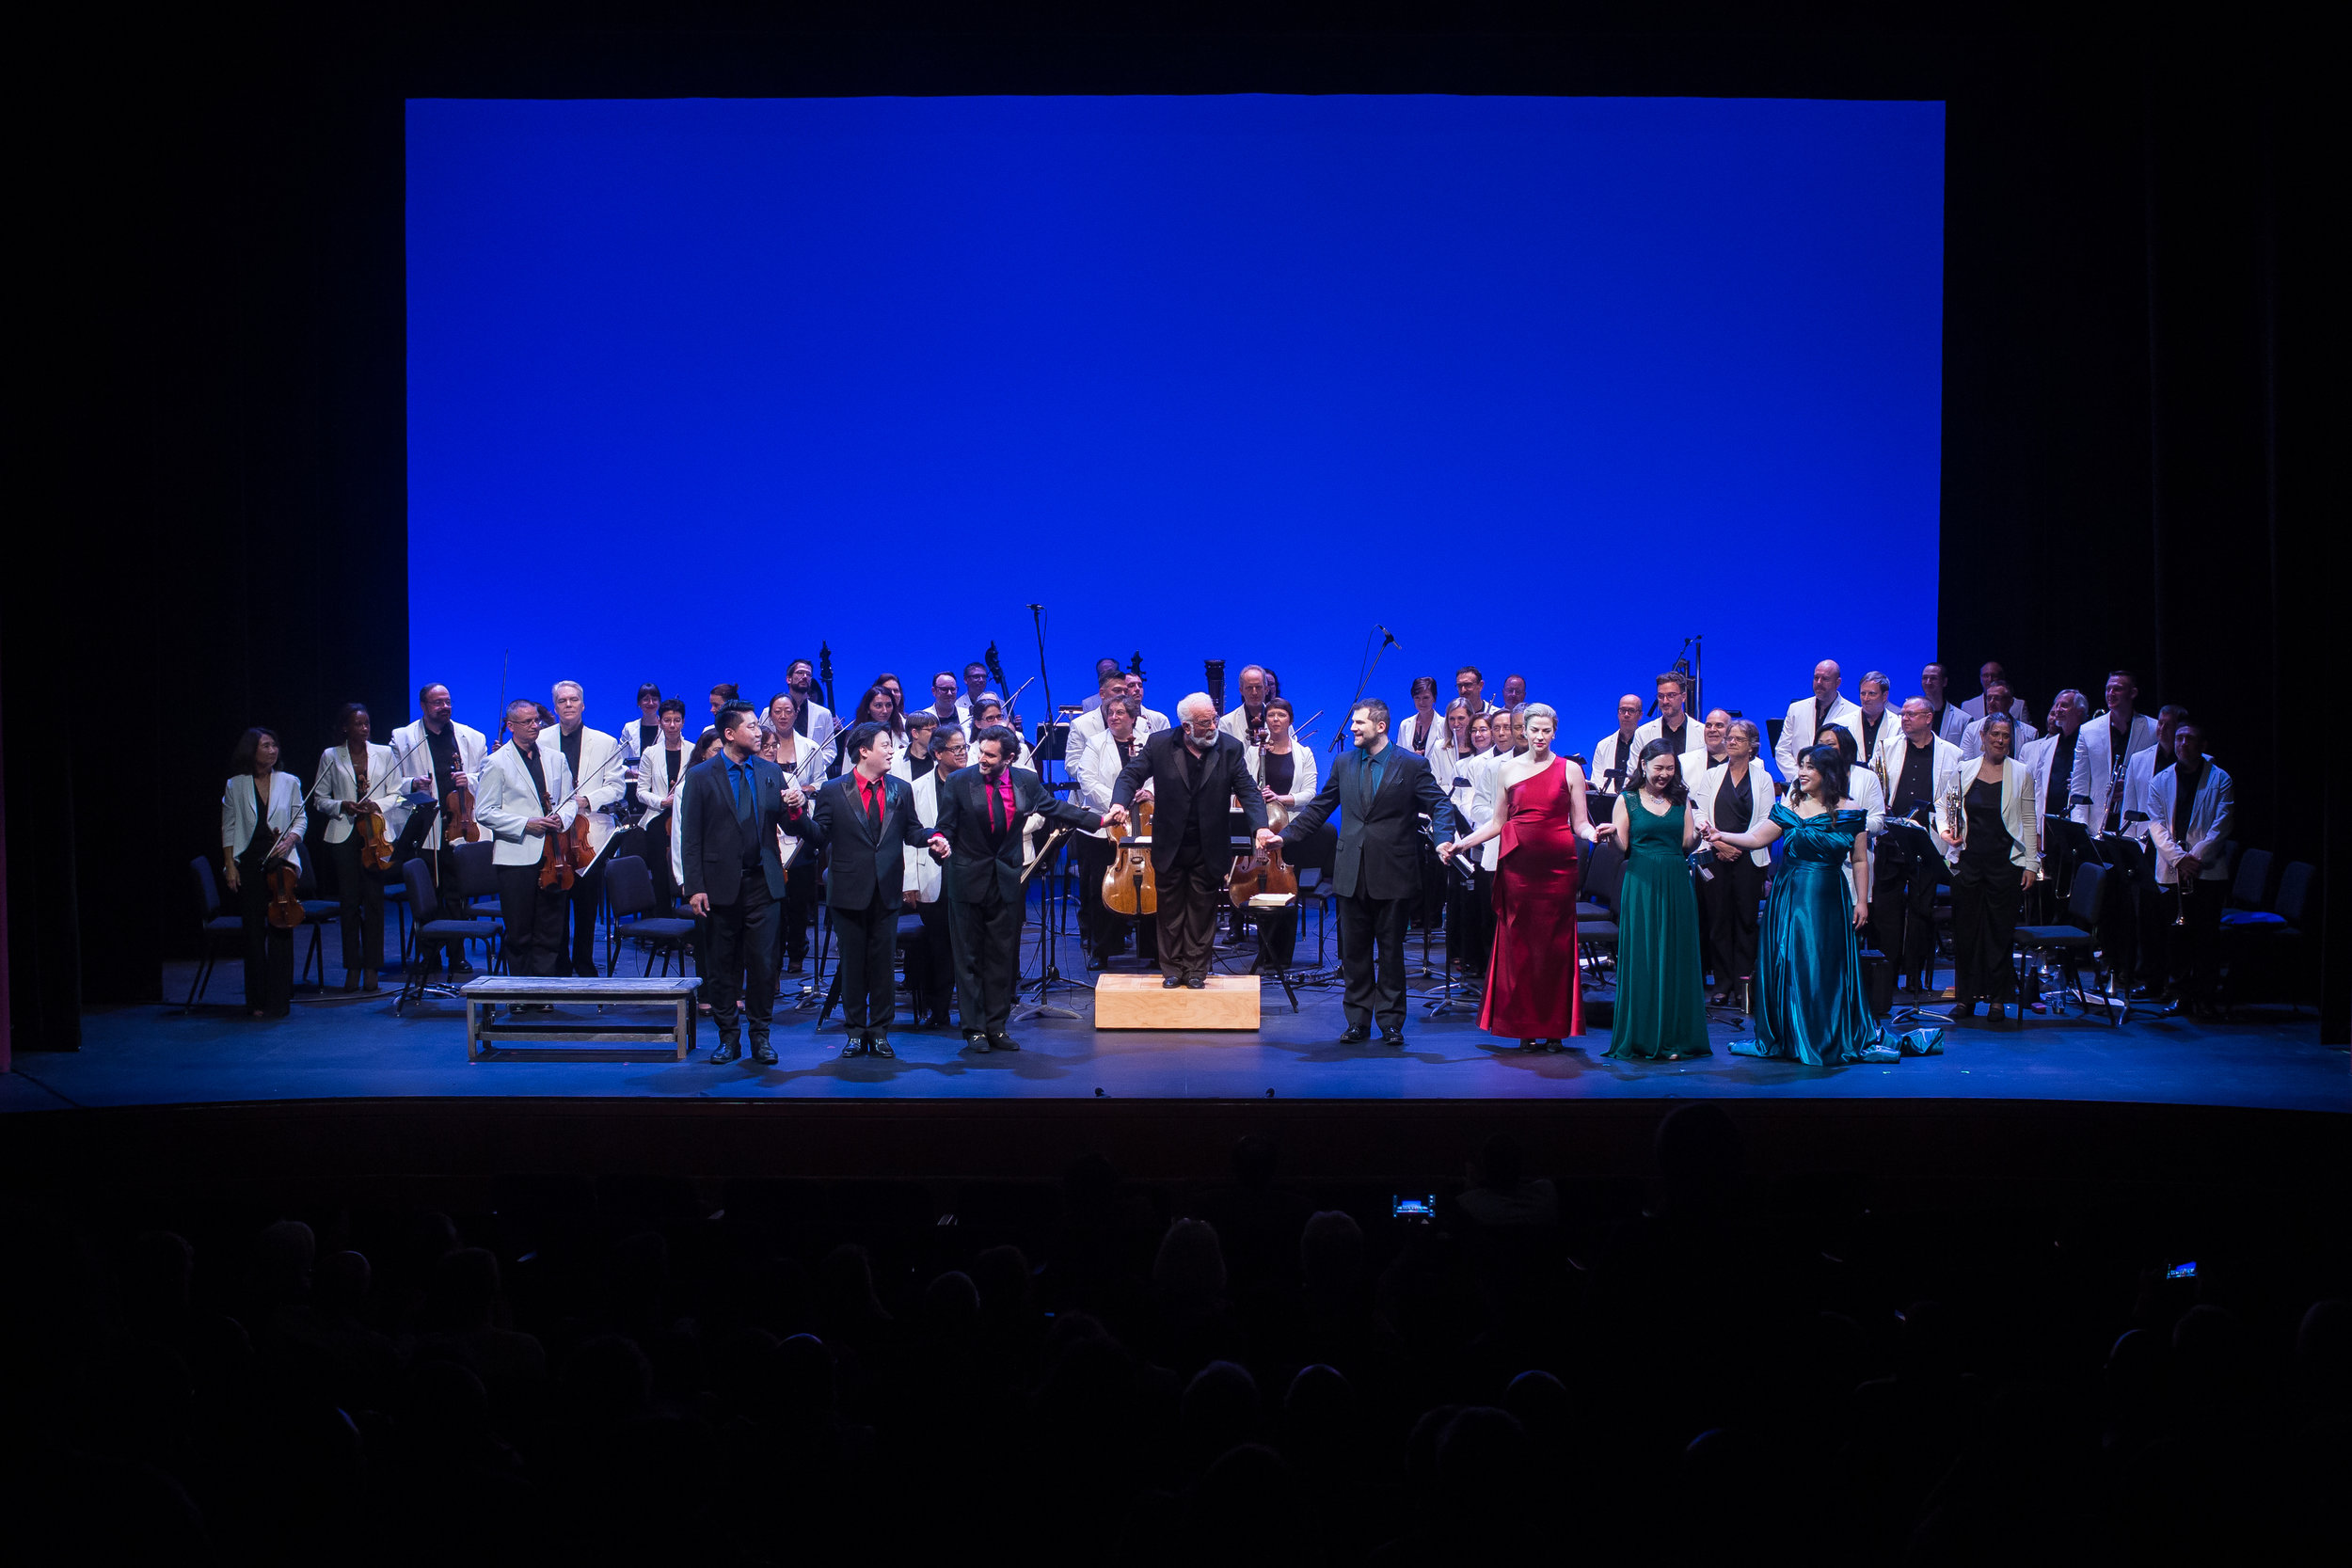 Curtain call:  l to r , SeungHyeon Baek, Yongxi Chen, Mauricio Miranda, Conductor Louis Salemno, Marco Cammarota, Catherine Martin, Nayoung Ban, and Youna Hartgraves. Photo by Dhanesh Mahtani; courtesy of Maryland Lyric Opera..